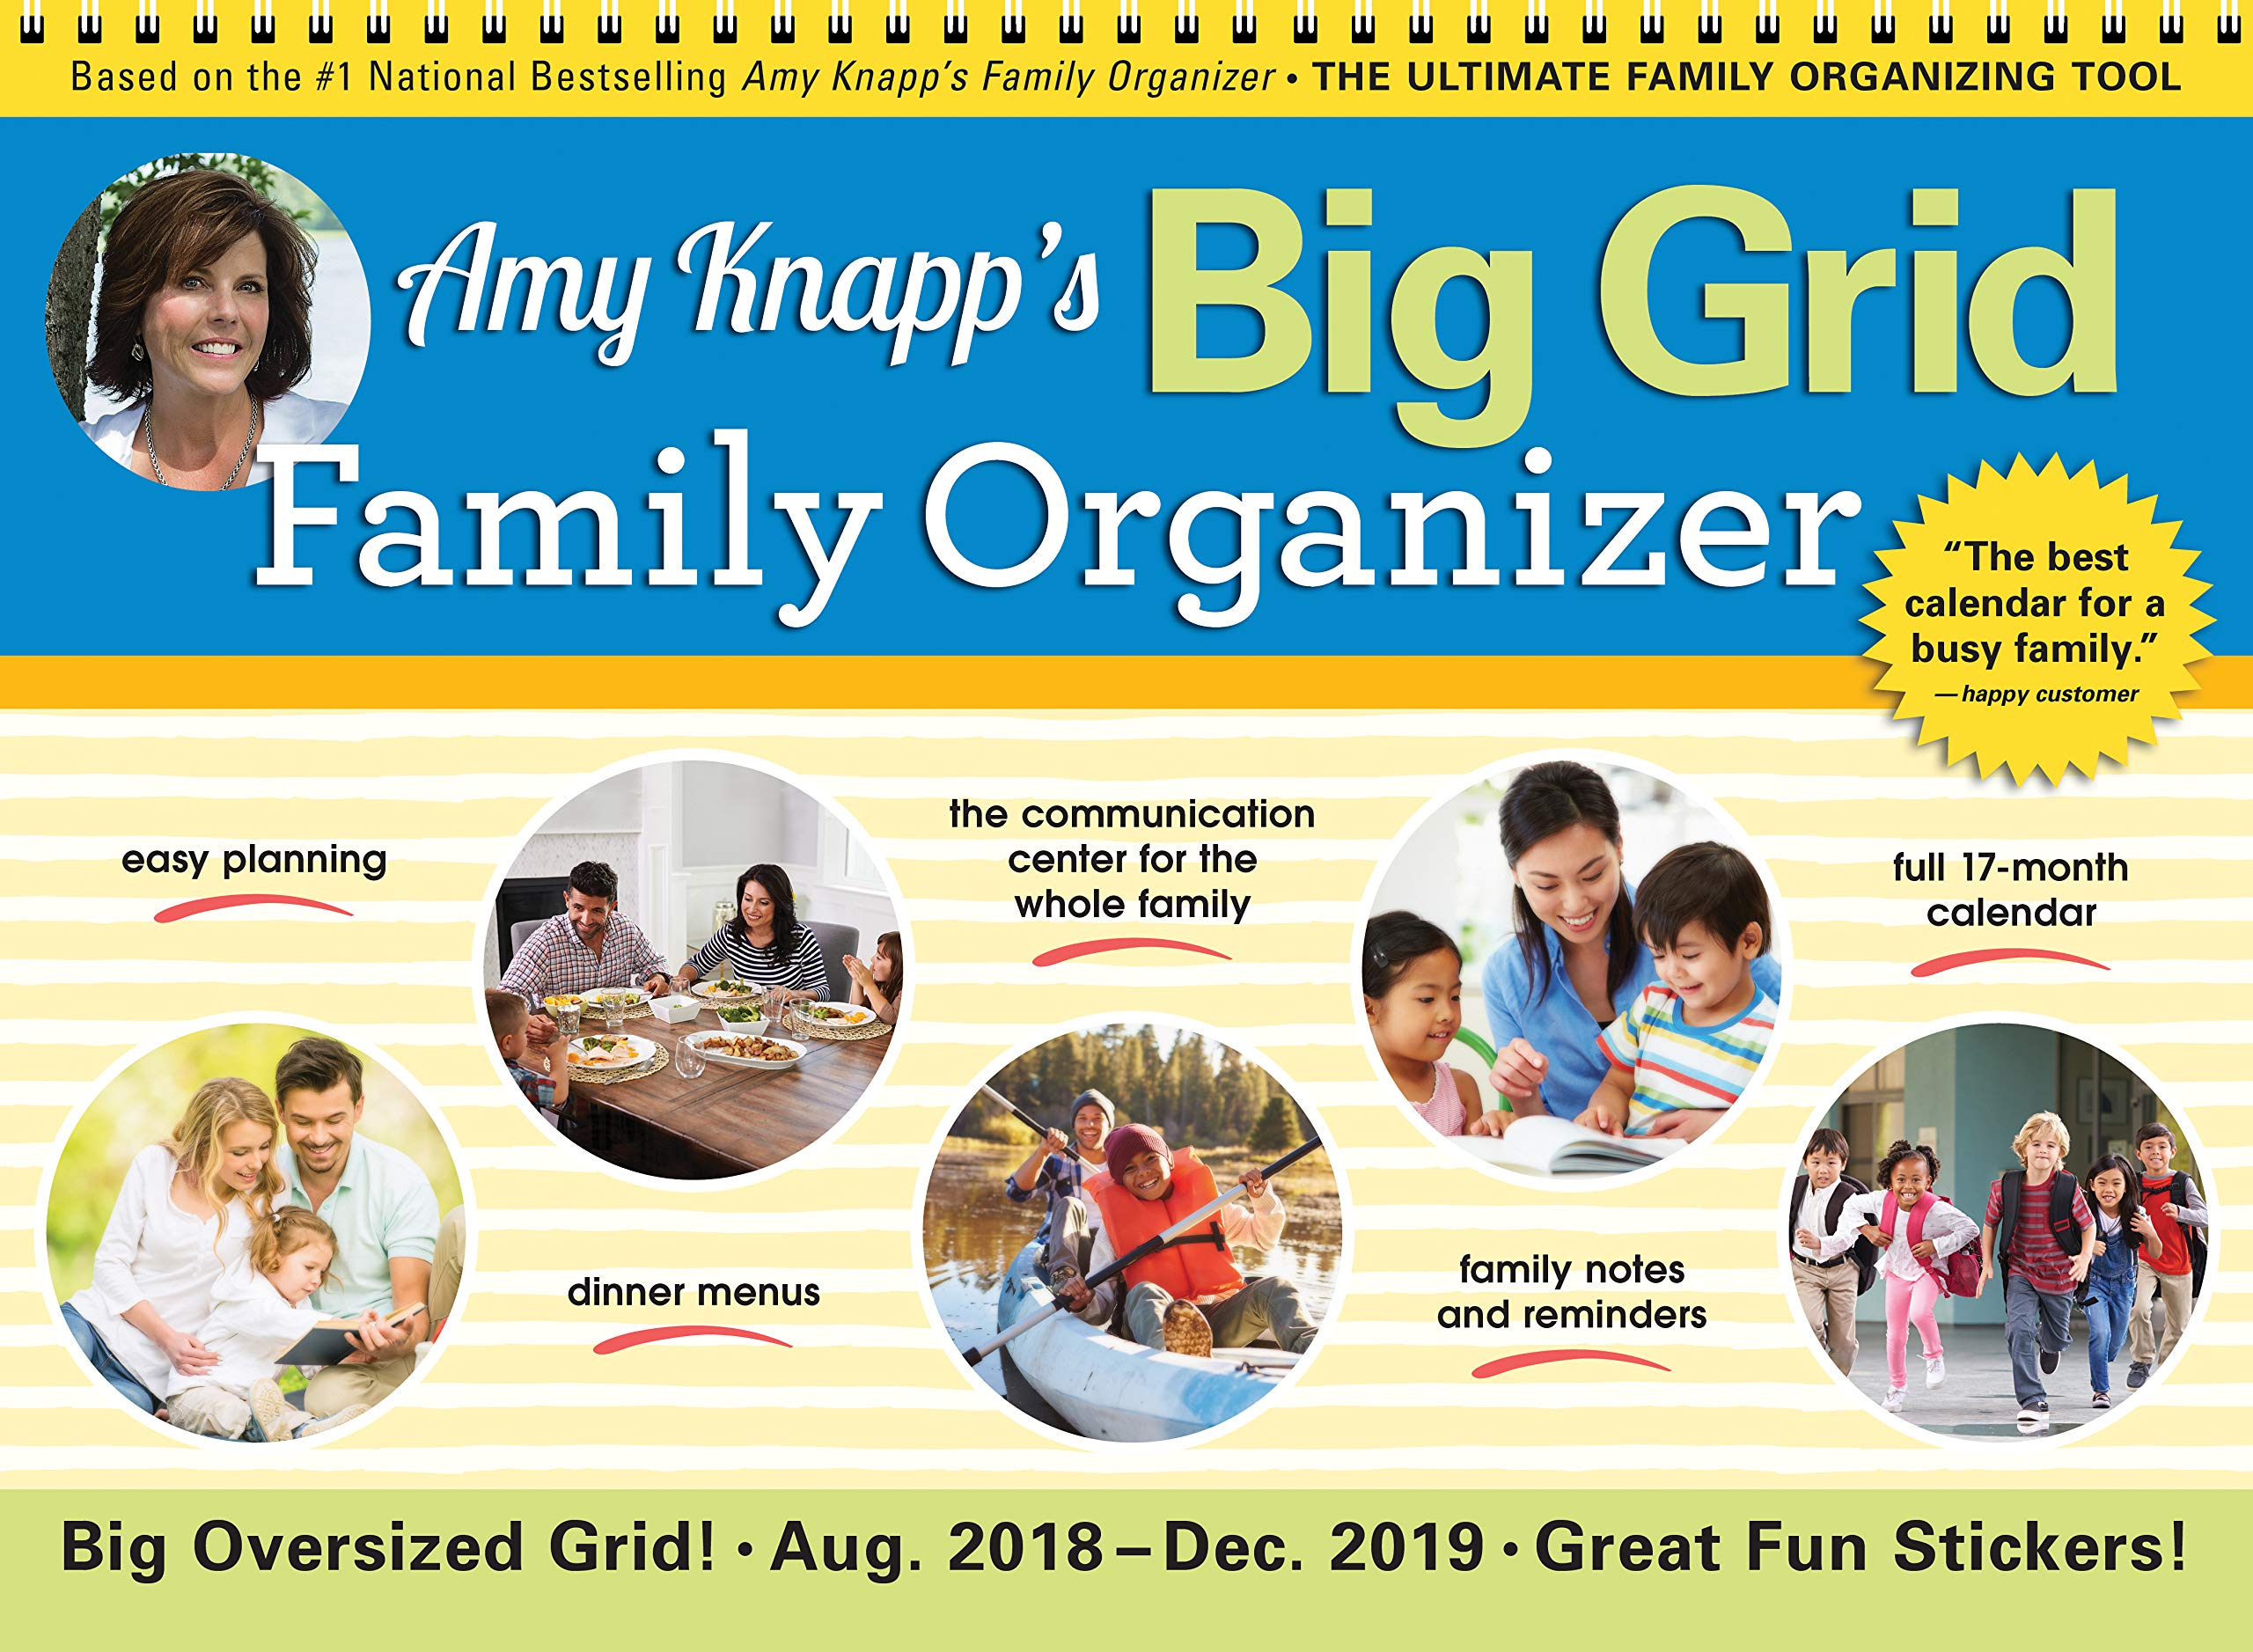 December 2019 Calendar Cust 2019 Amy Knapp's Big Grid Family Organizer Wall Calendar: August